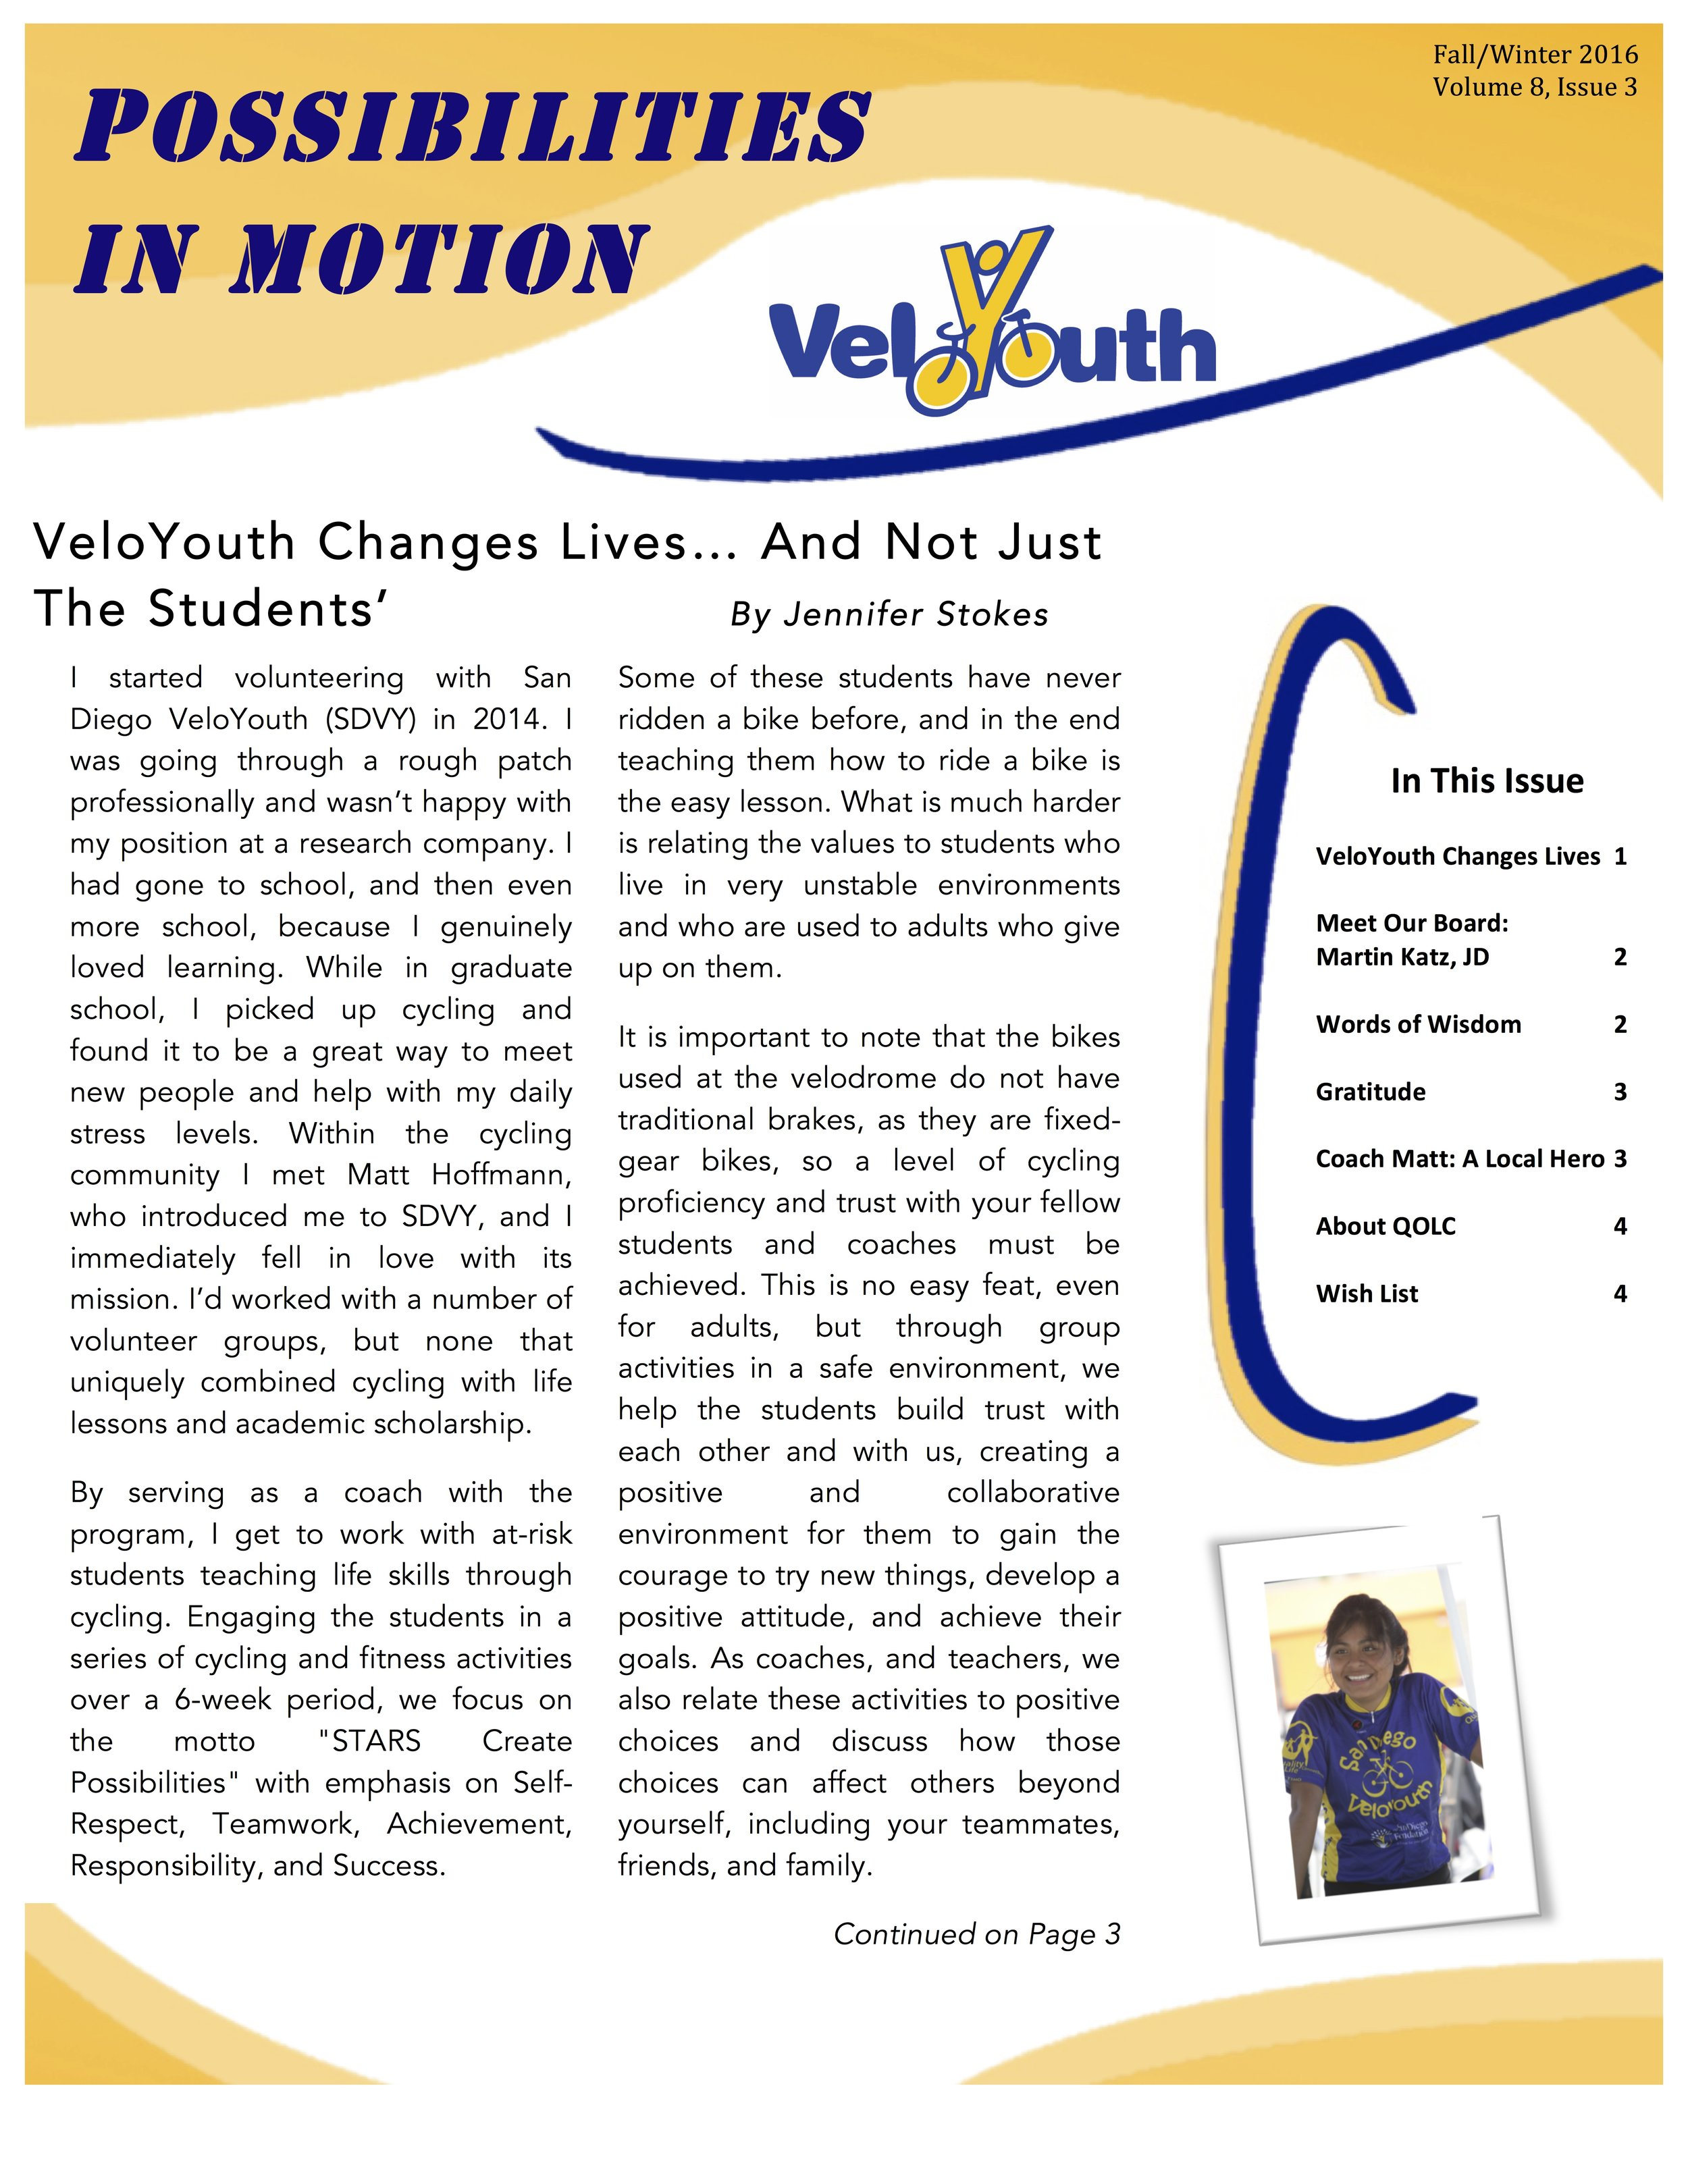 Possibilities In Motion 2016-3 Page 1.jpg